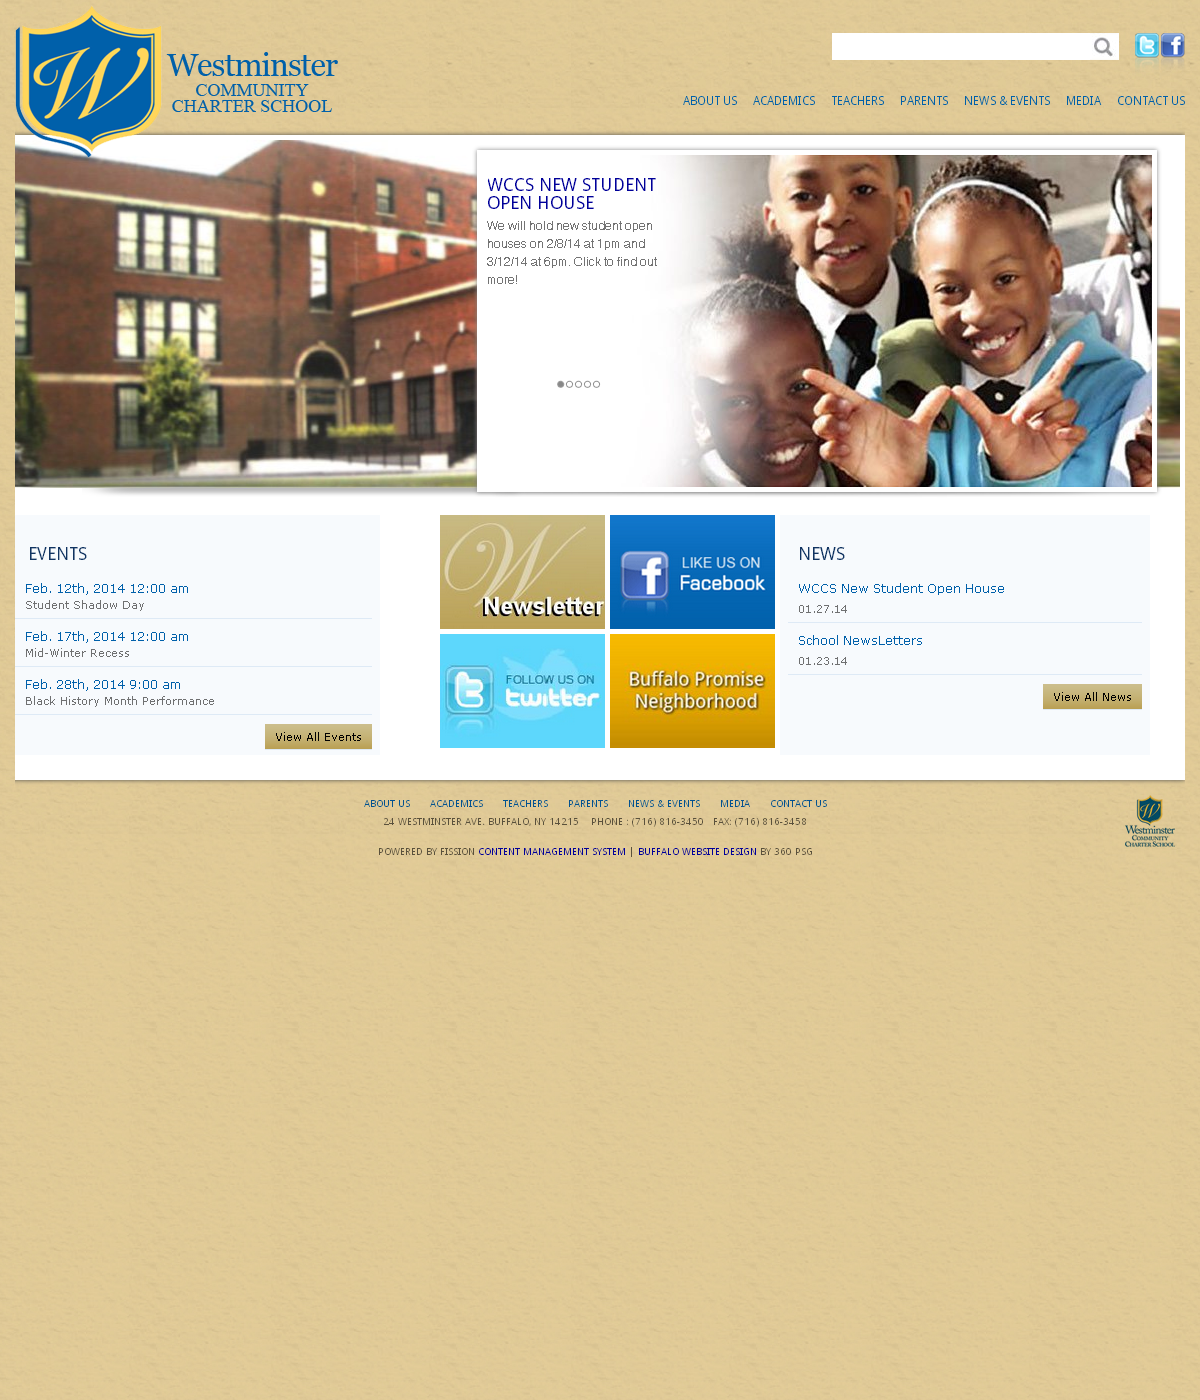 Westminster Community Charter School